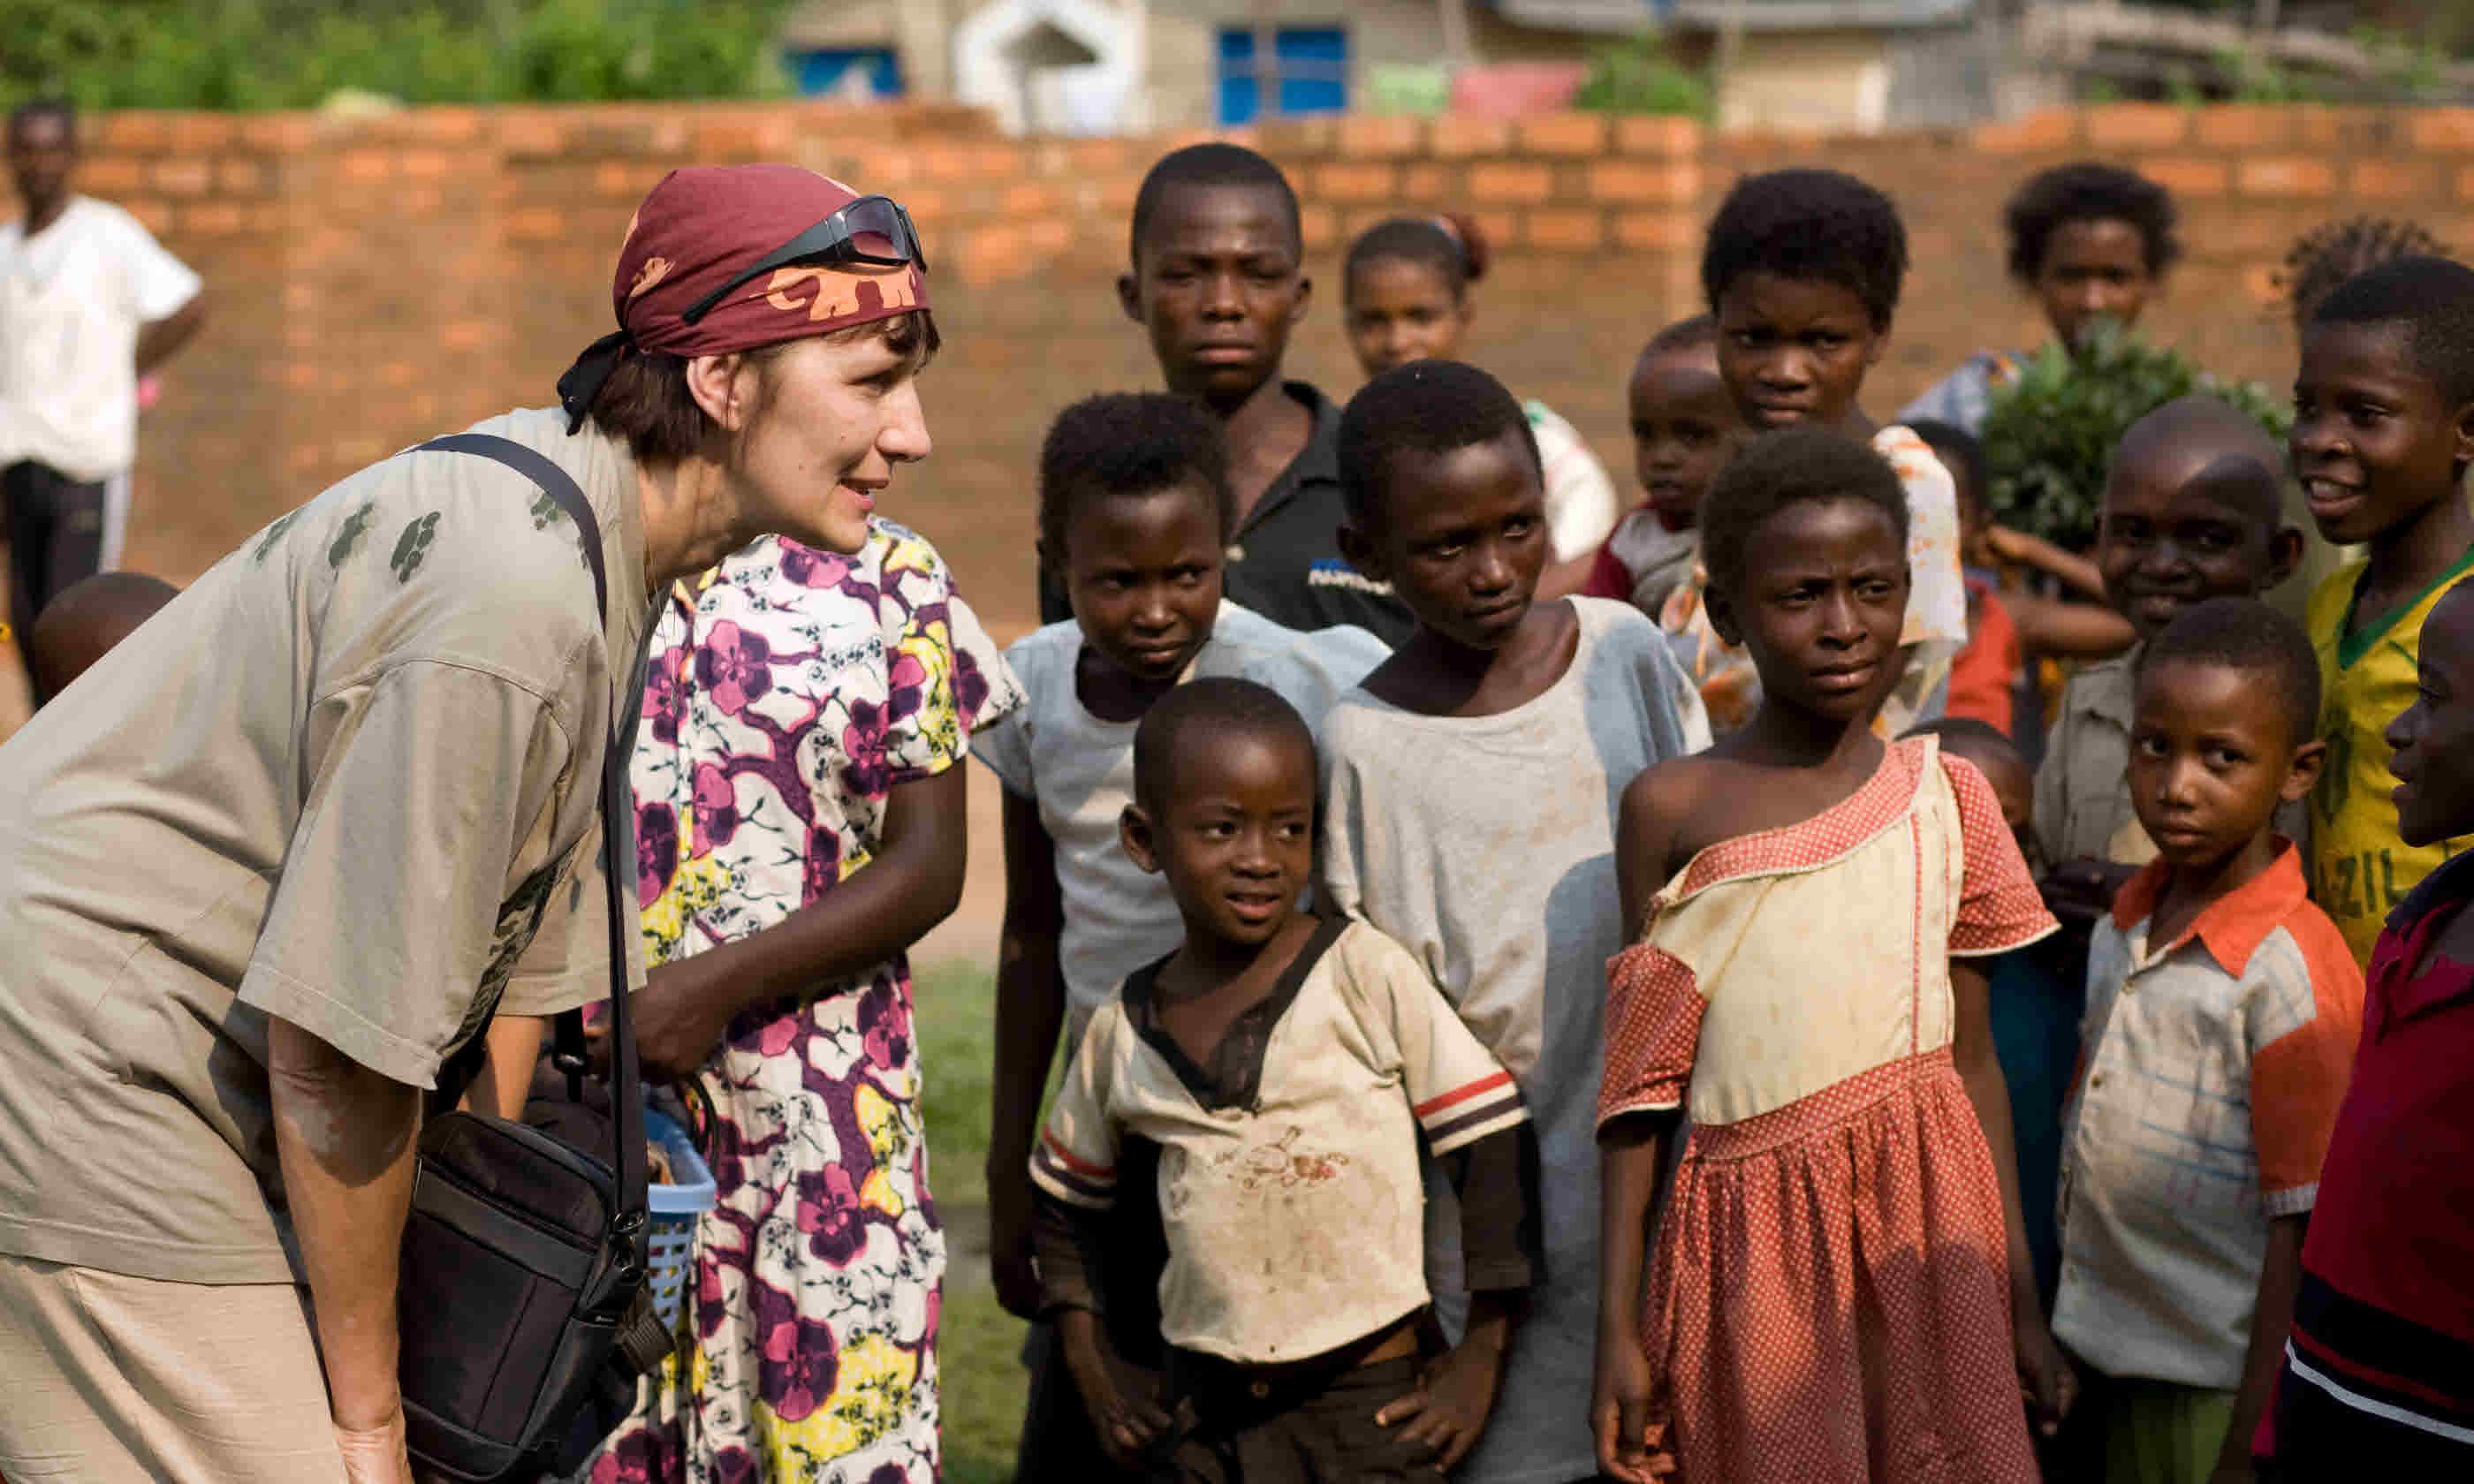 Volunteer talking to Congolese children (Shutterstock)